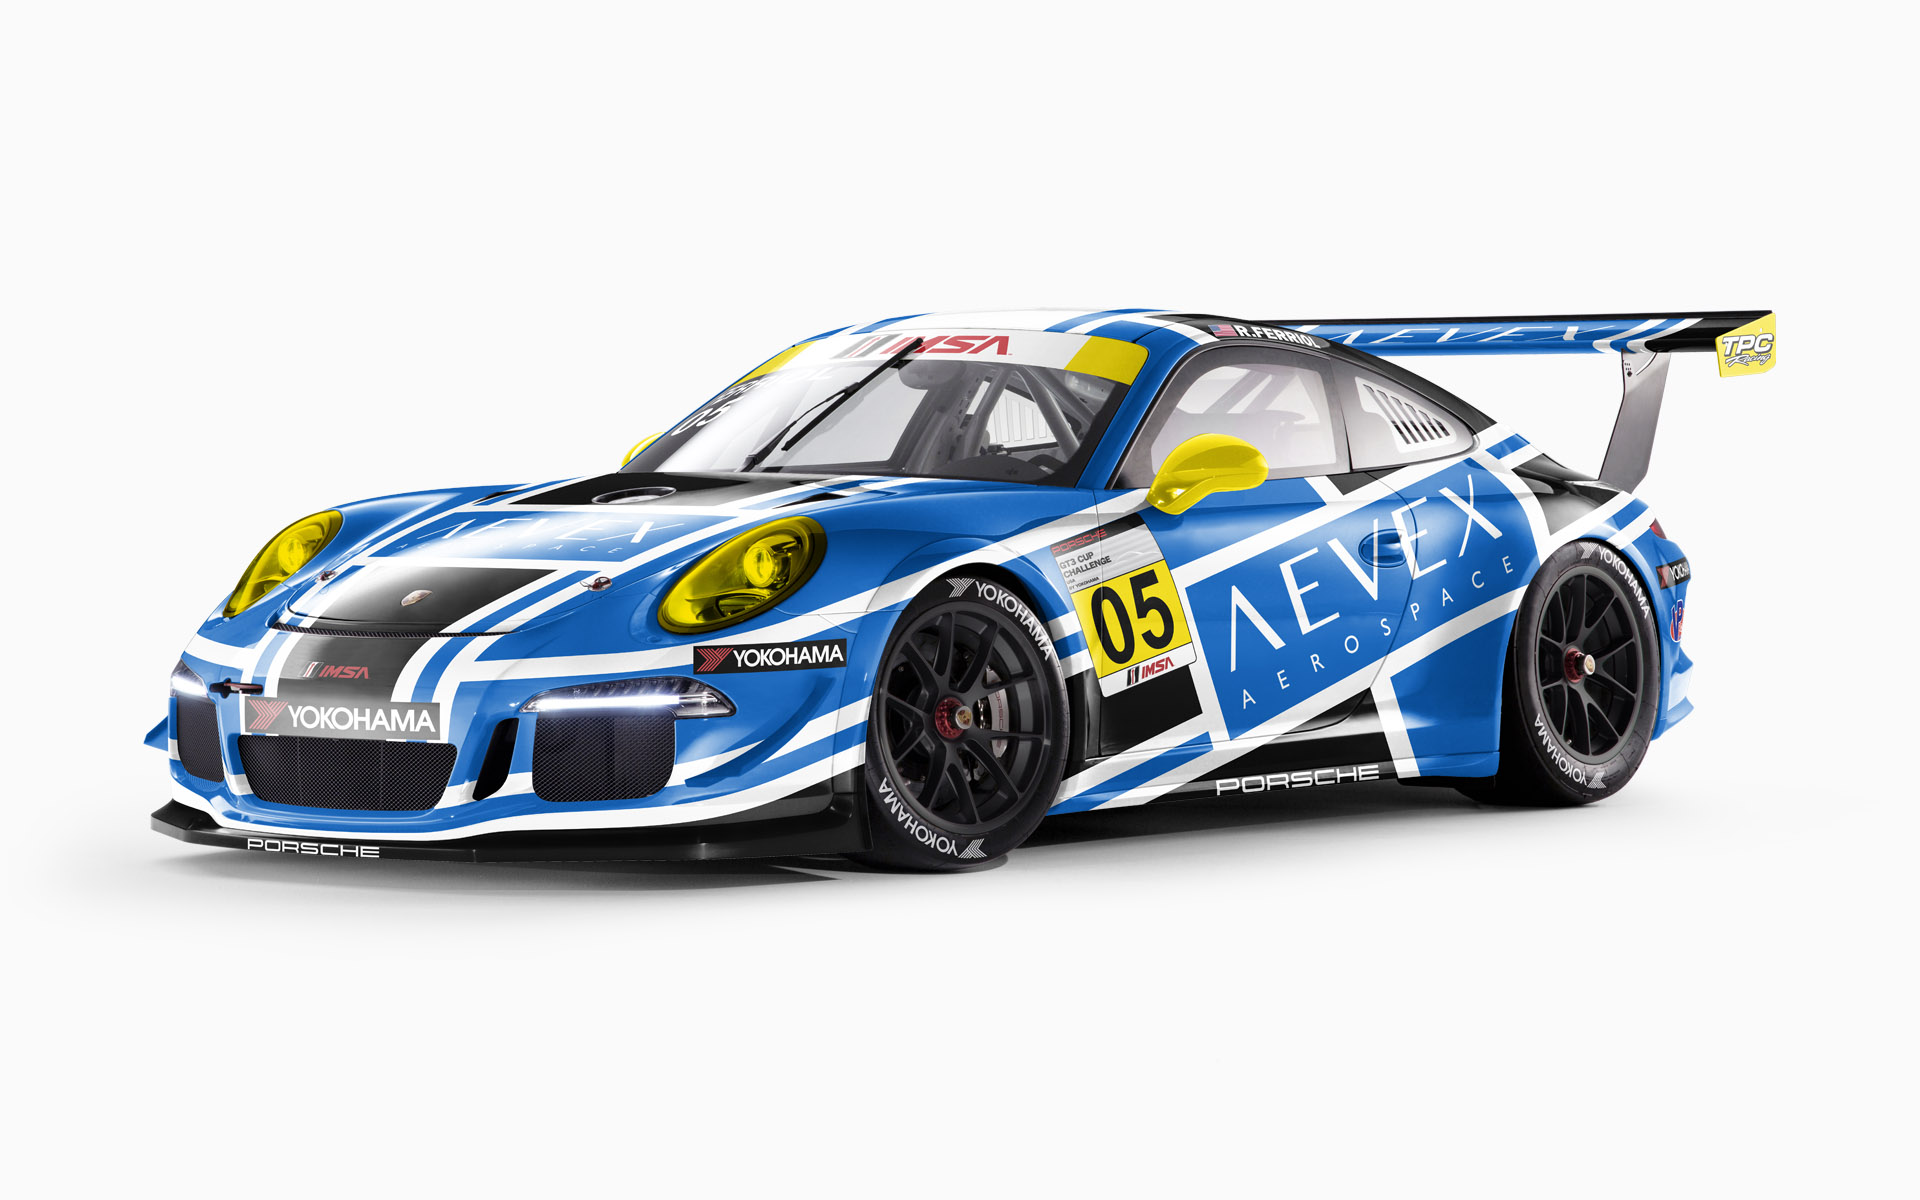 TPC Racing Aevex Aerospace Porsche 911 GT3 Cup Livery Visualization